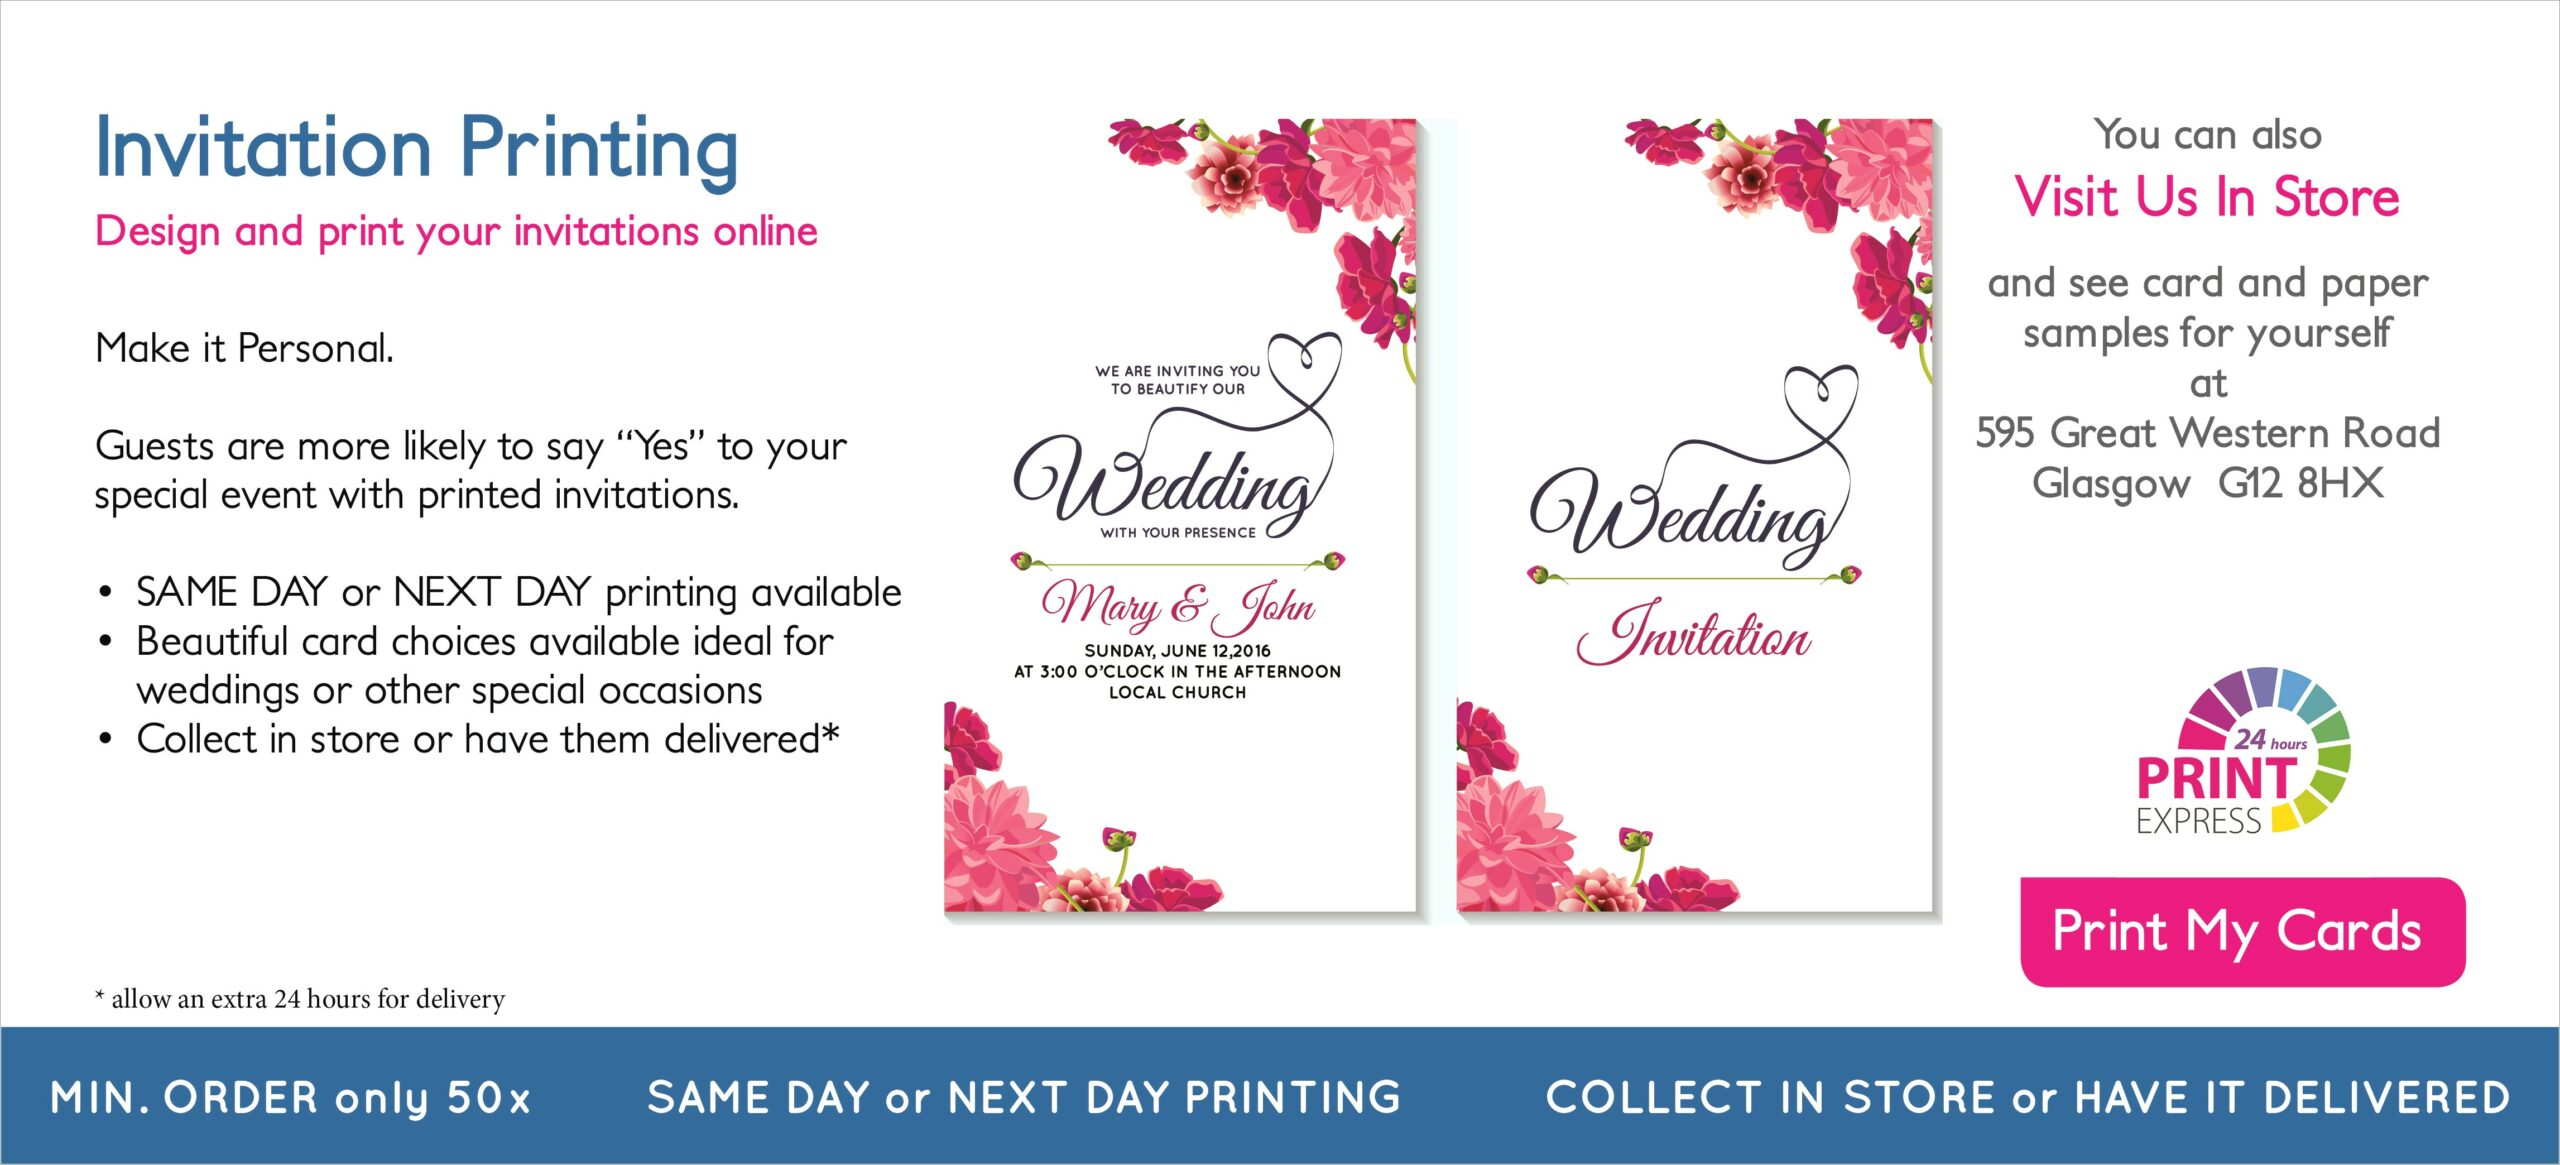 Can Staples Print Invitations